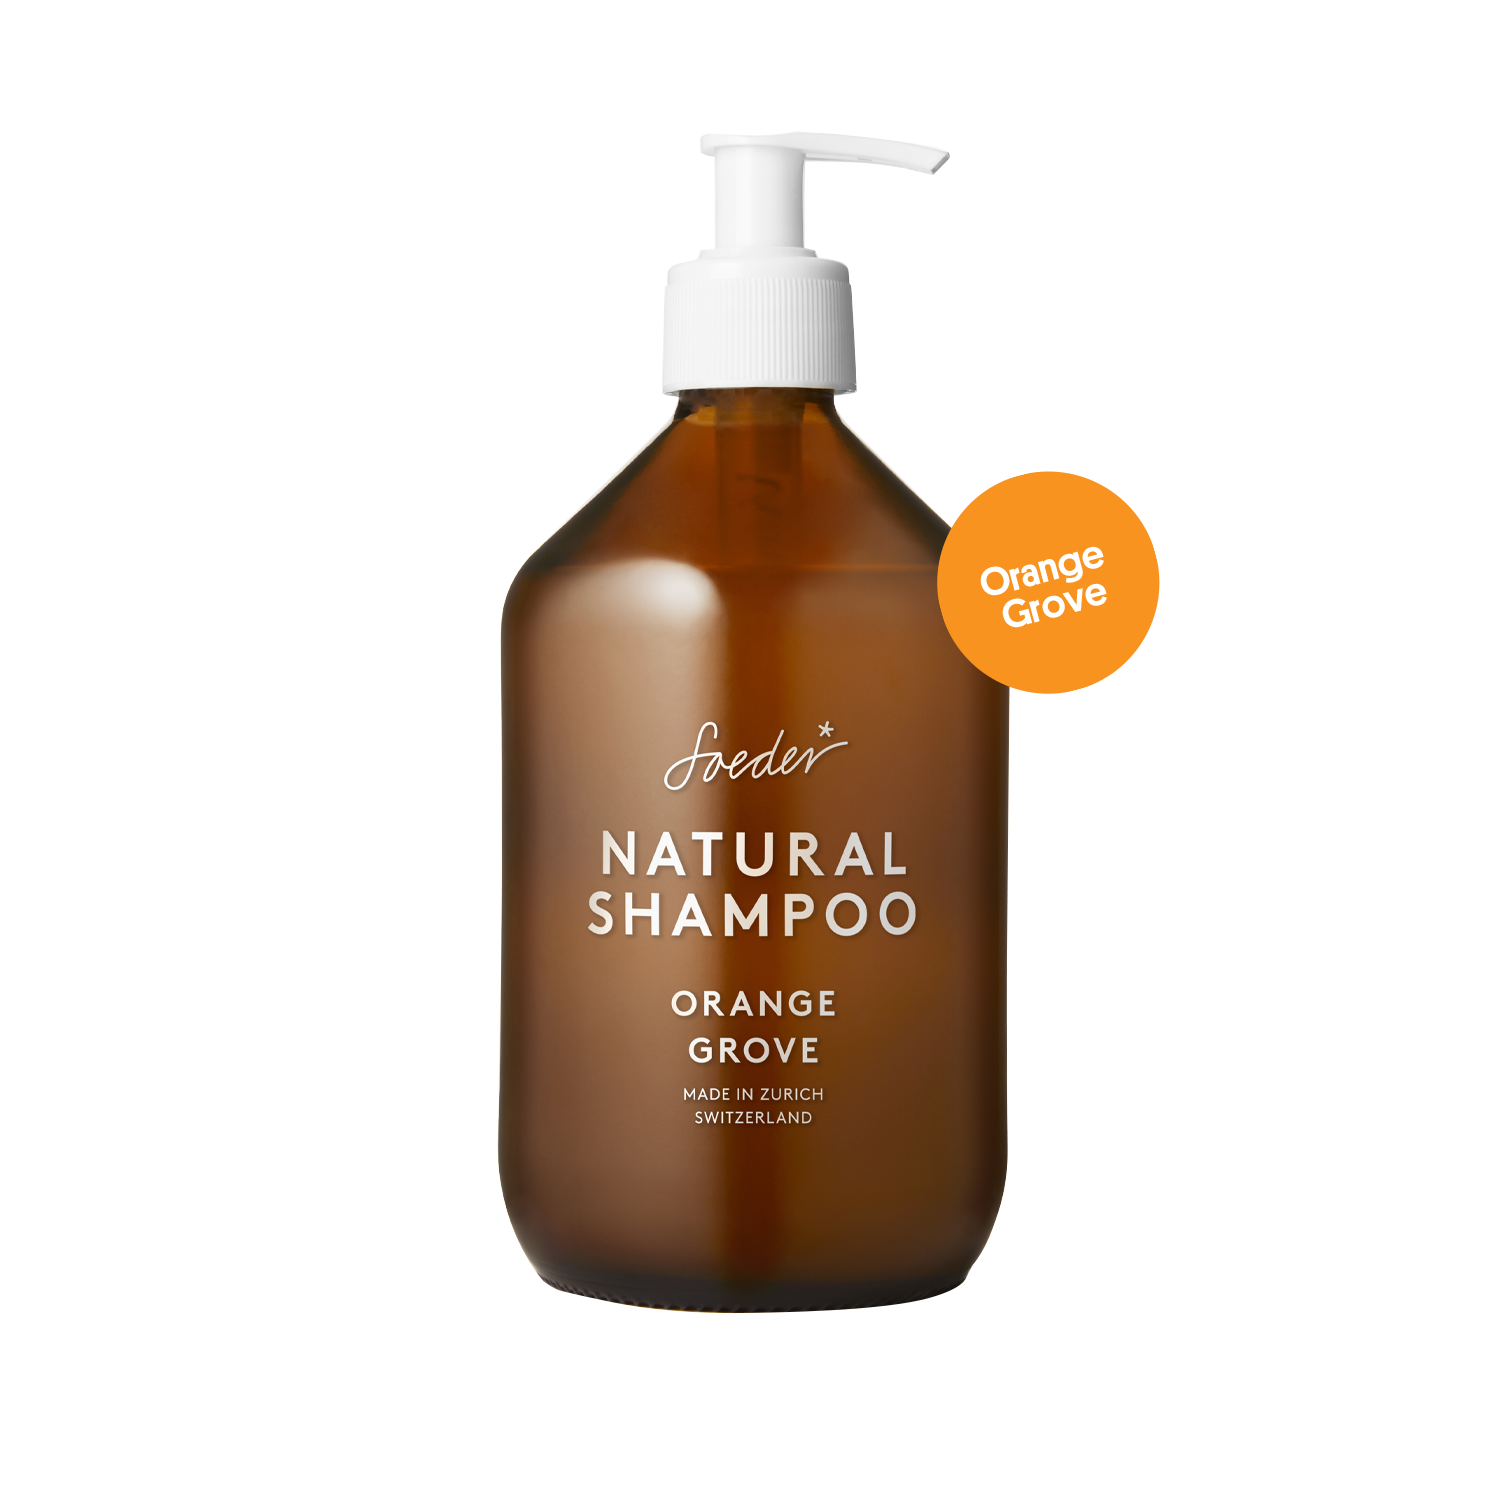 Natural Shampoo – Orange Grove 500 ml von soeder*